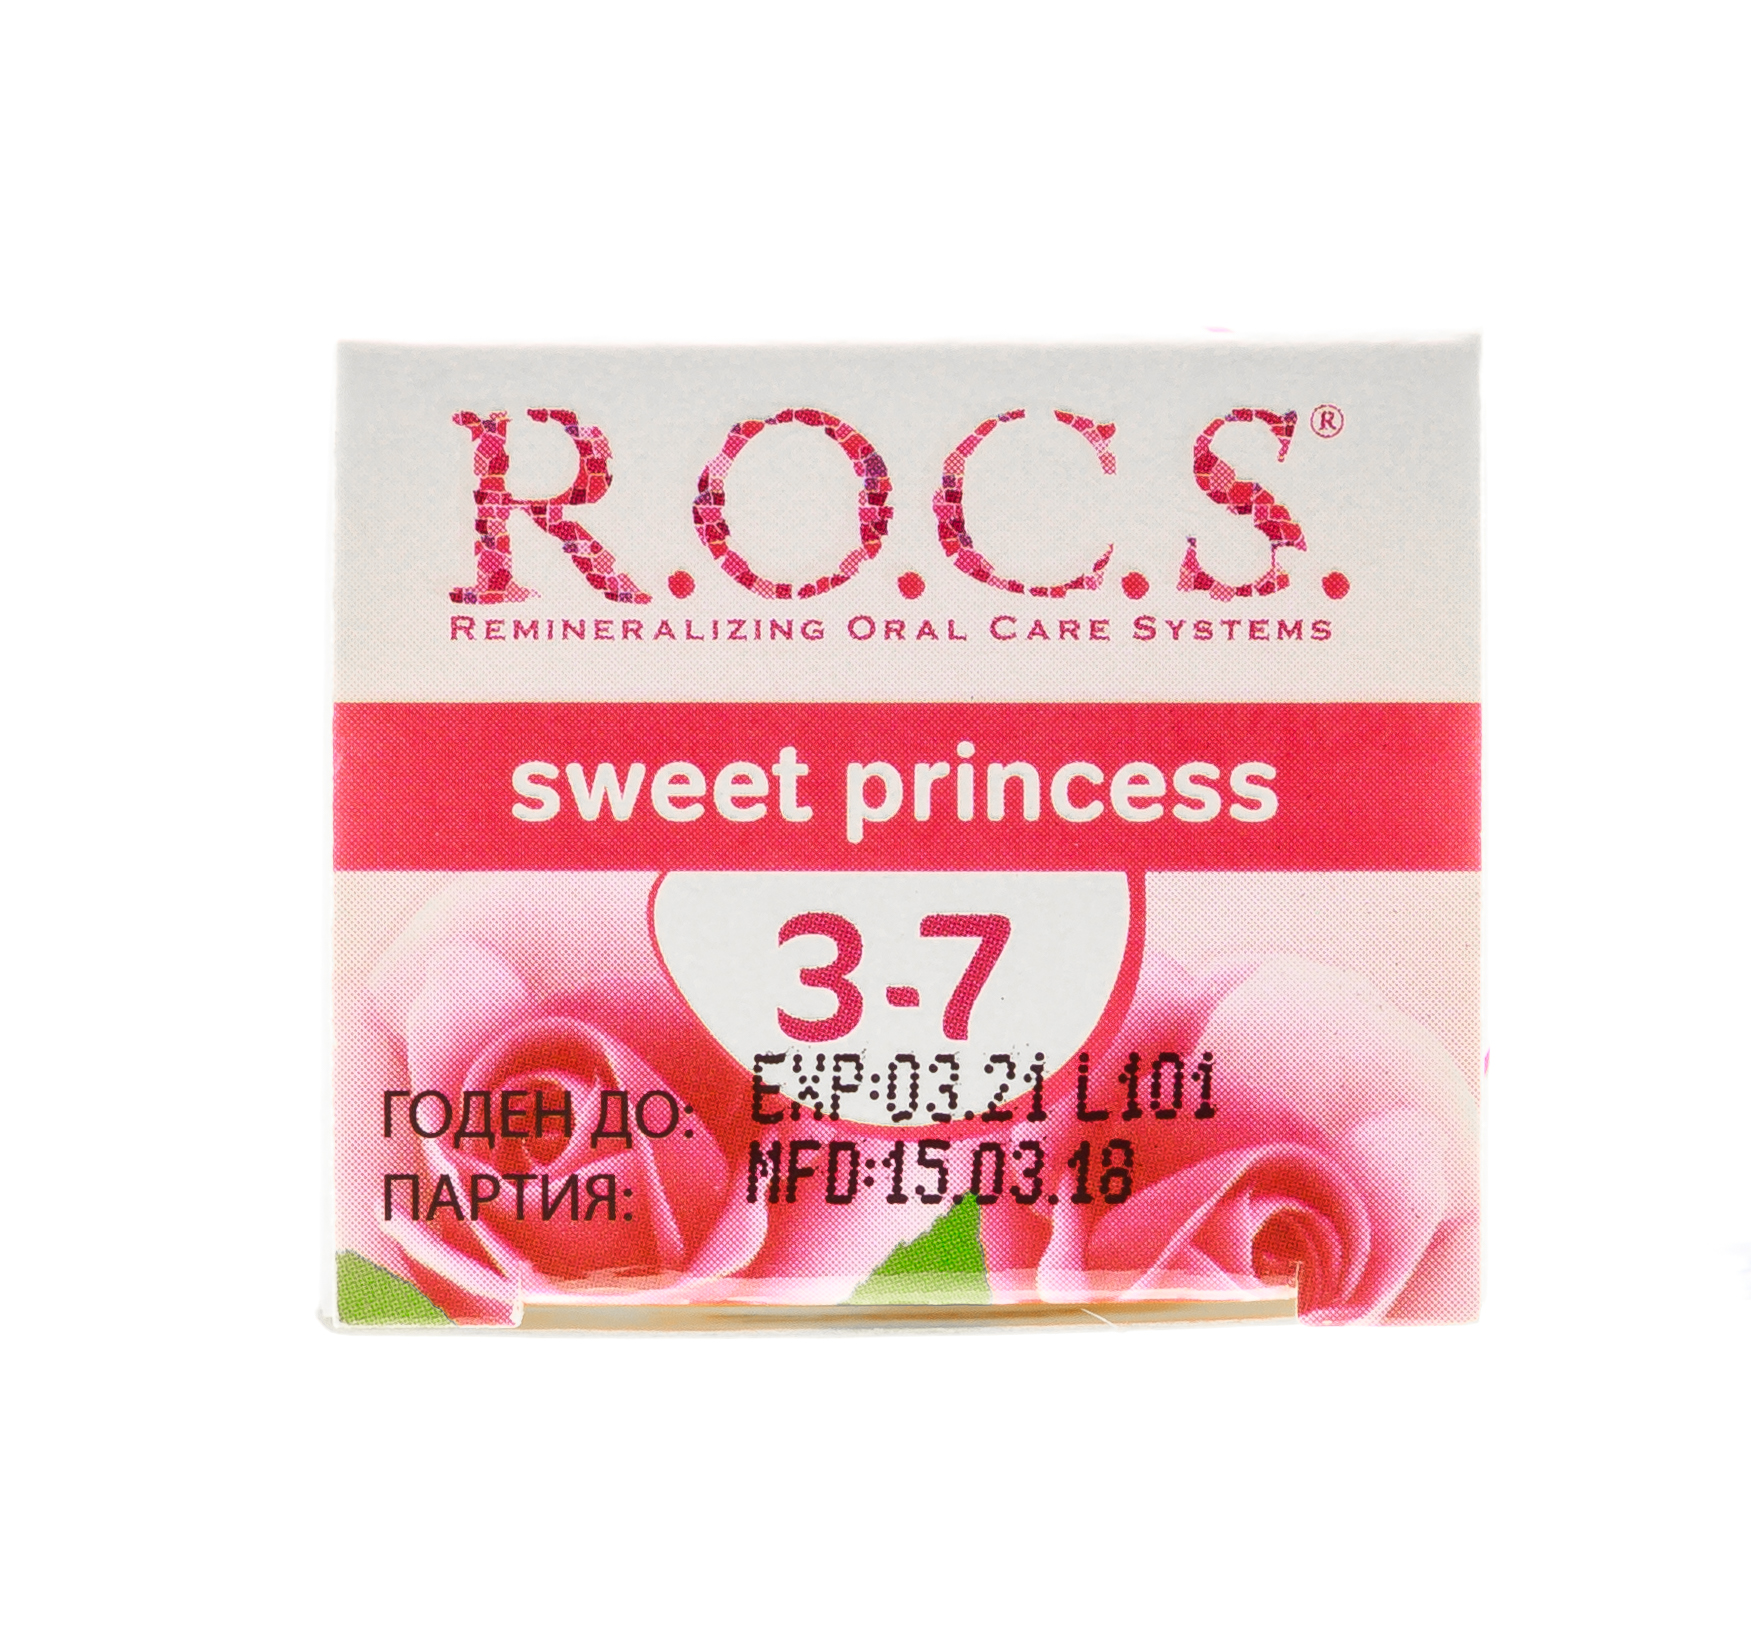 Рокс Зубная паста Kids Sweet Princess с ароматом Розы, 45 г (R.O.C.S, Kids 3-7 years) фото 2